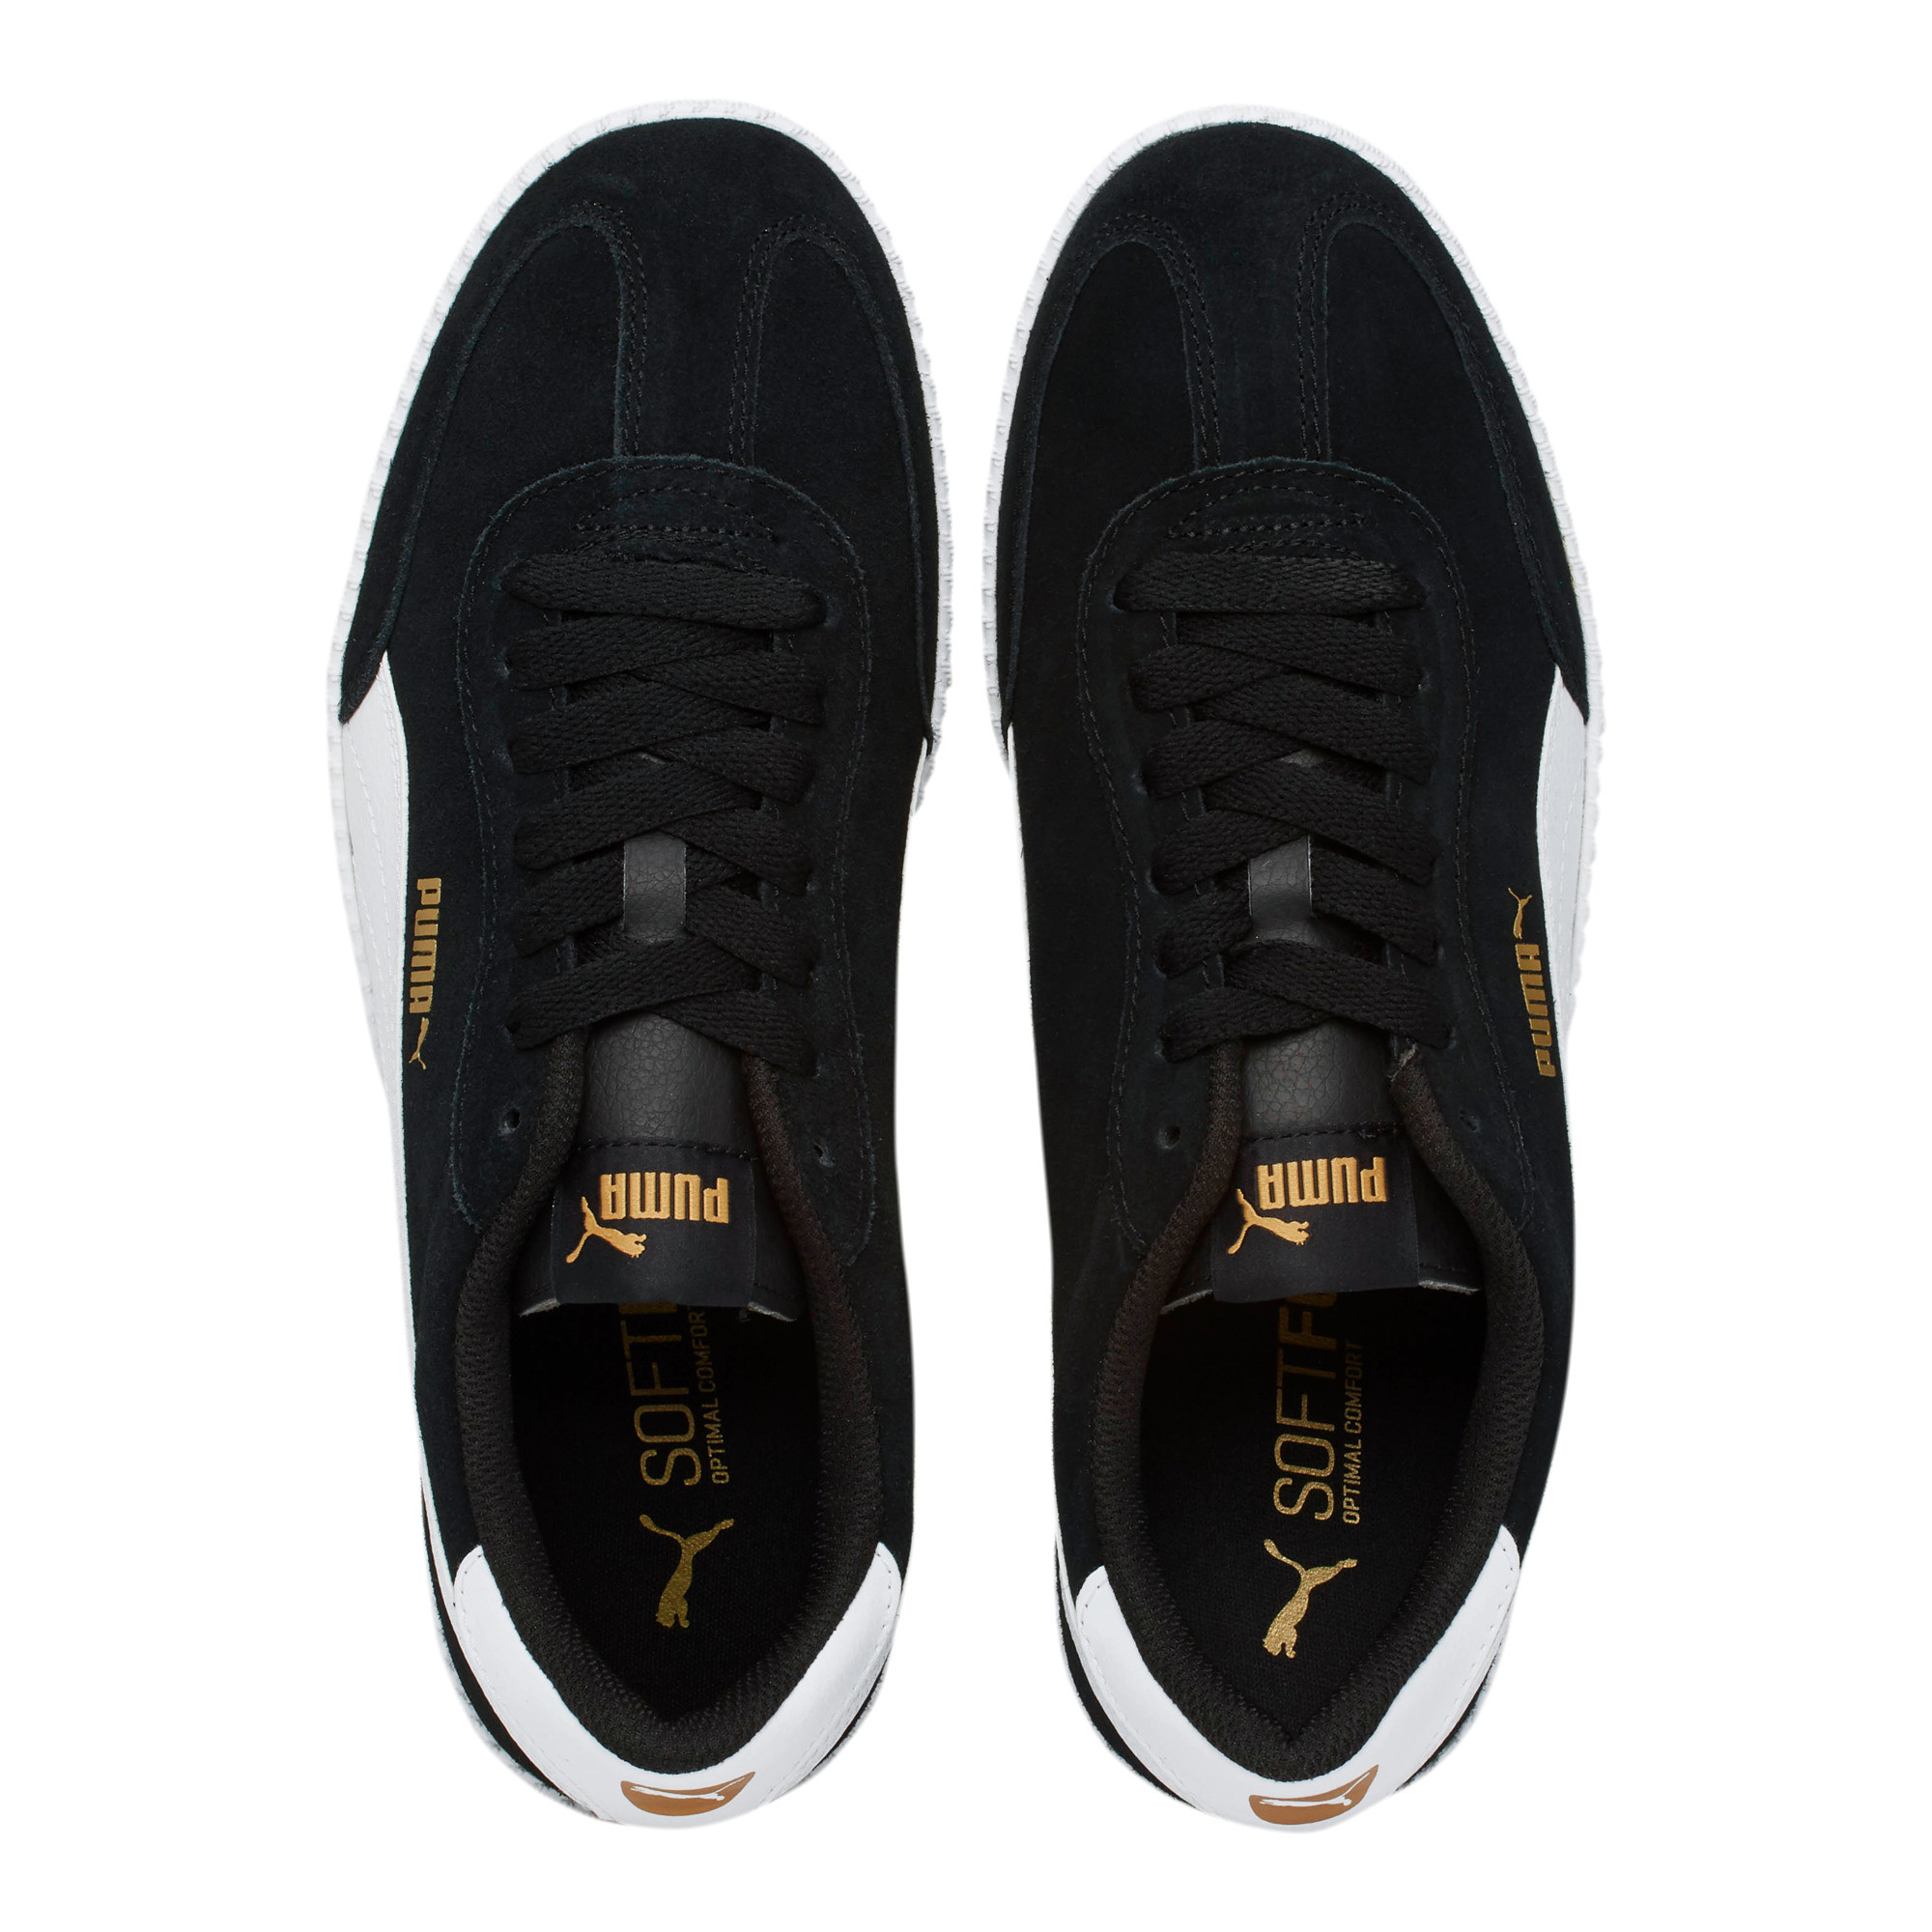 PUMA-Men-039-s-Astro-Cup-Suede-Sneakers thumbnail 12